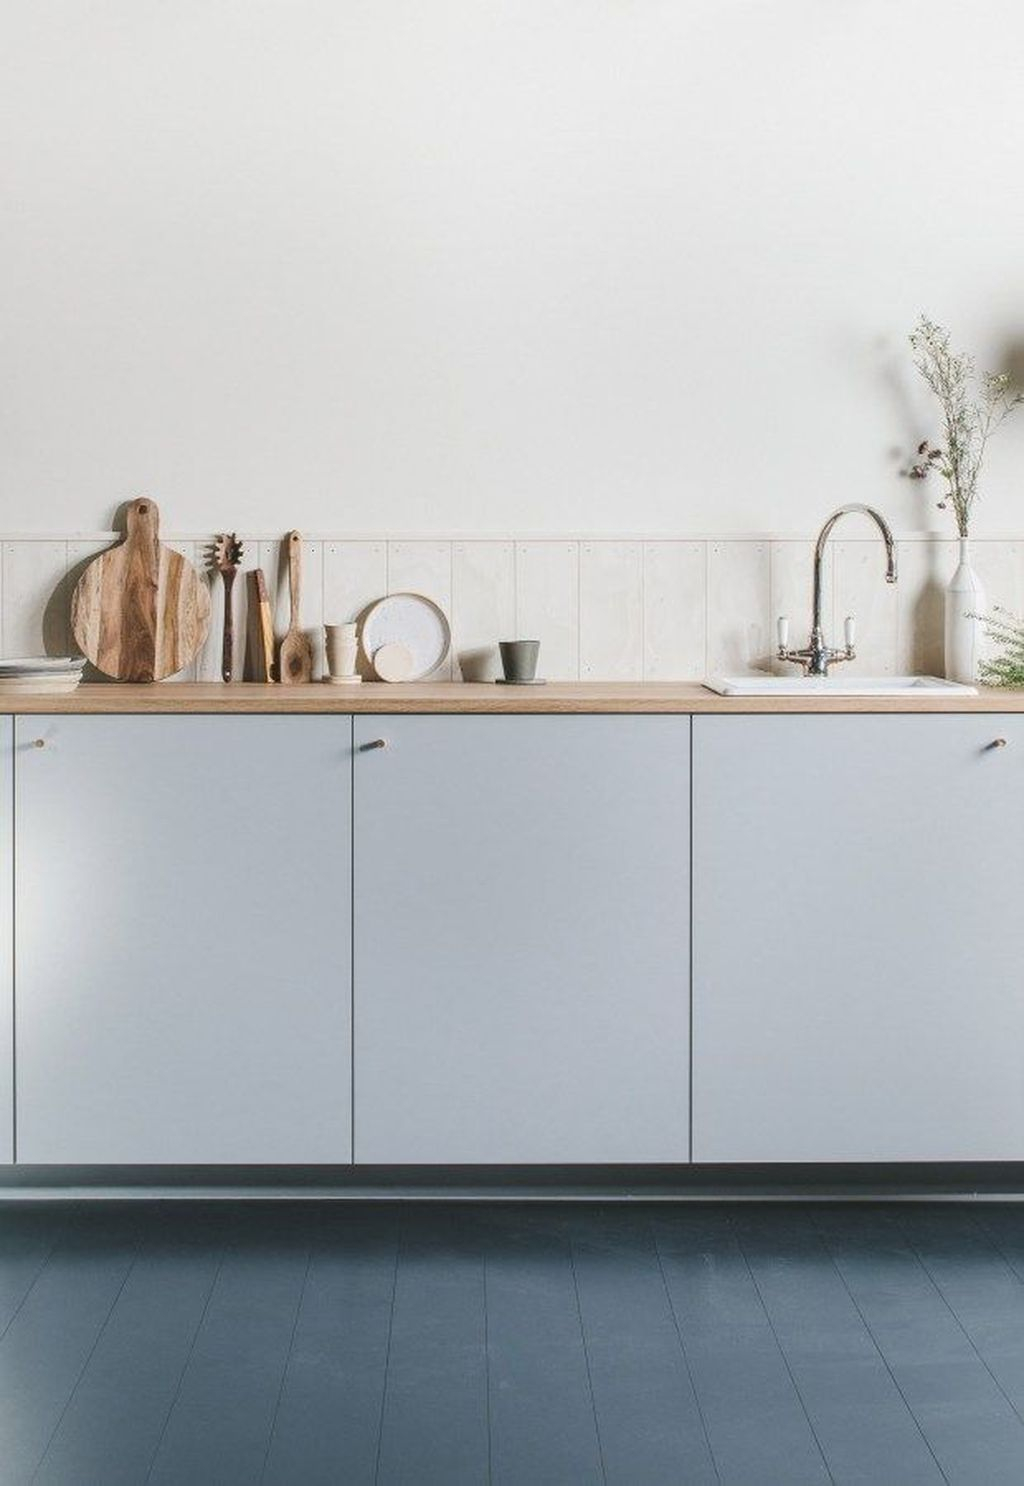 Elegant Minimalist Kitchen Design Ideas For Small Space To Try 18